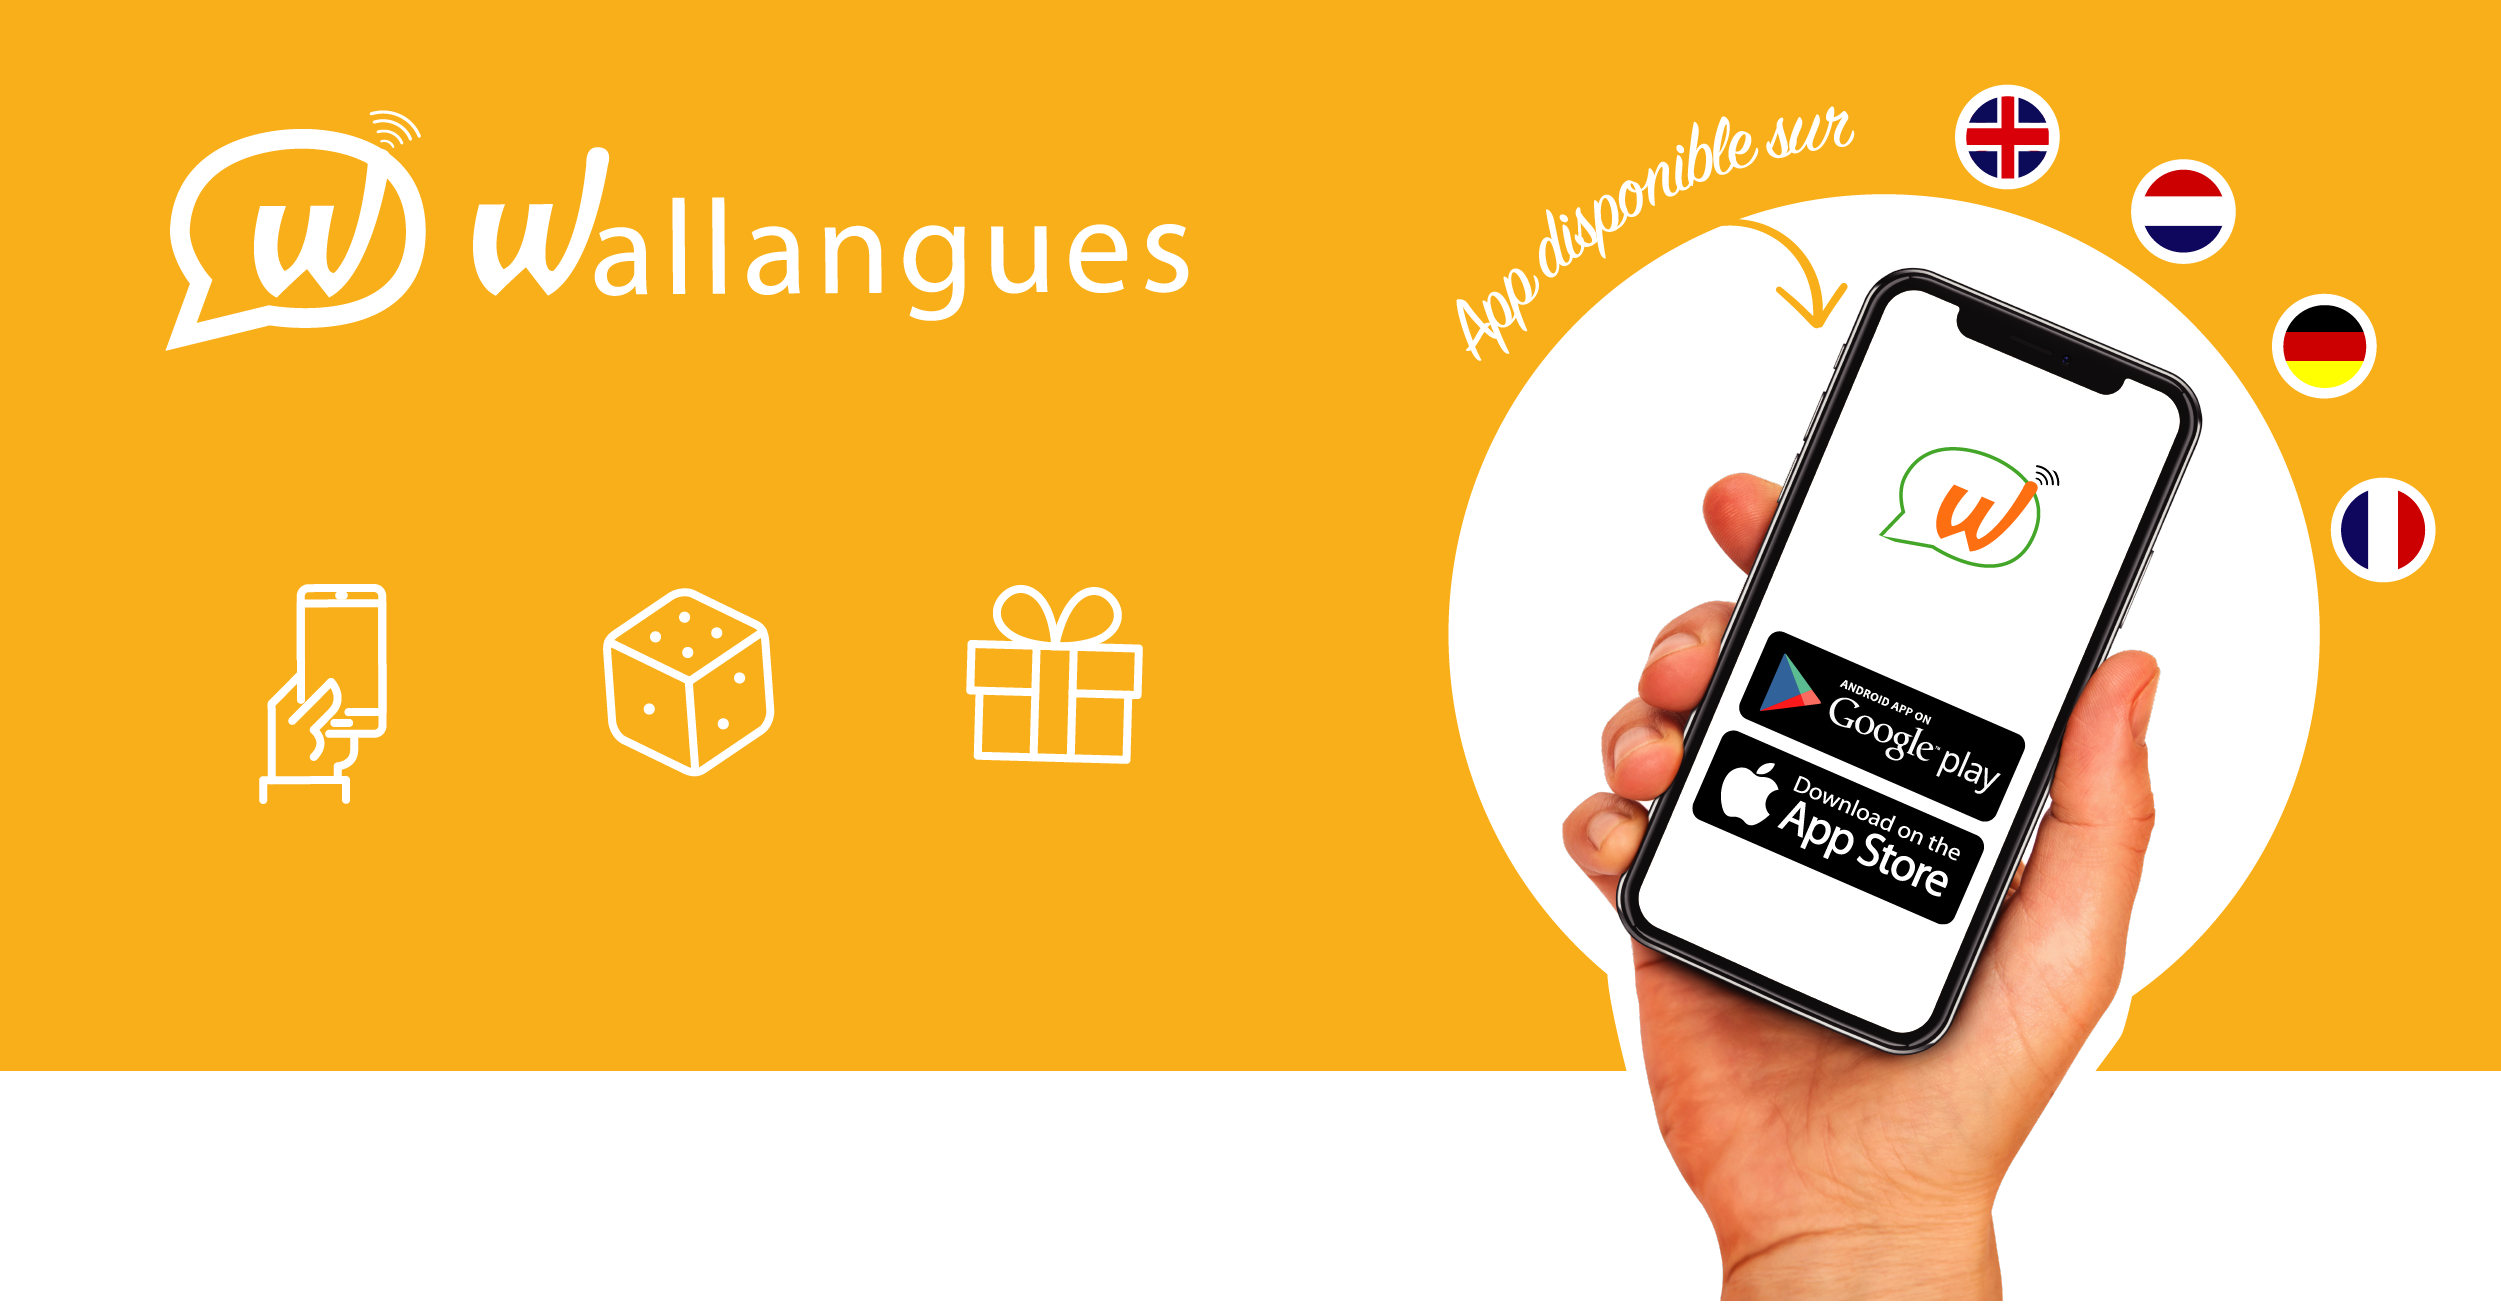 La Wallonie lance l'application Wallangues et rend l'apprentissage des langues encore plus facile !